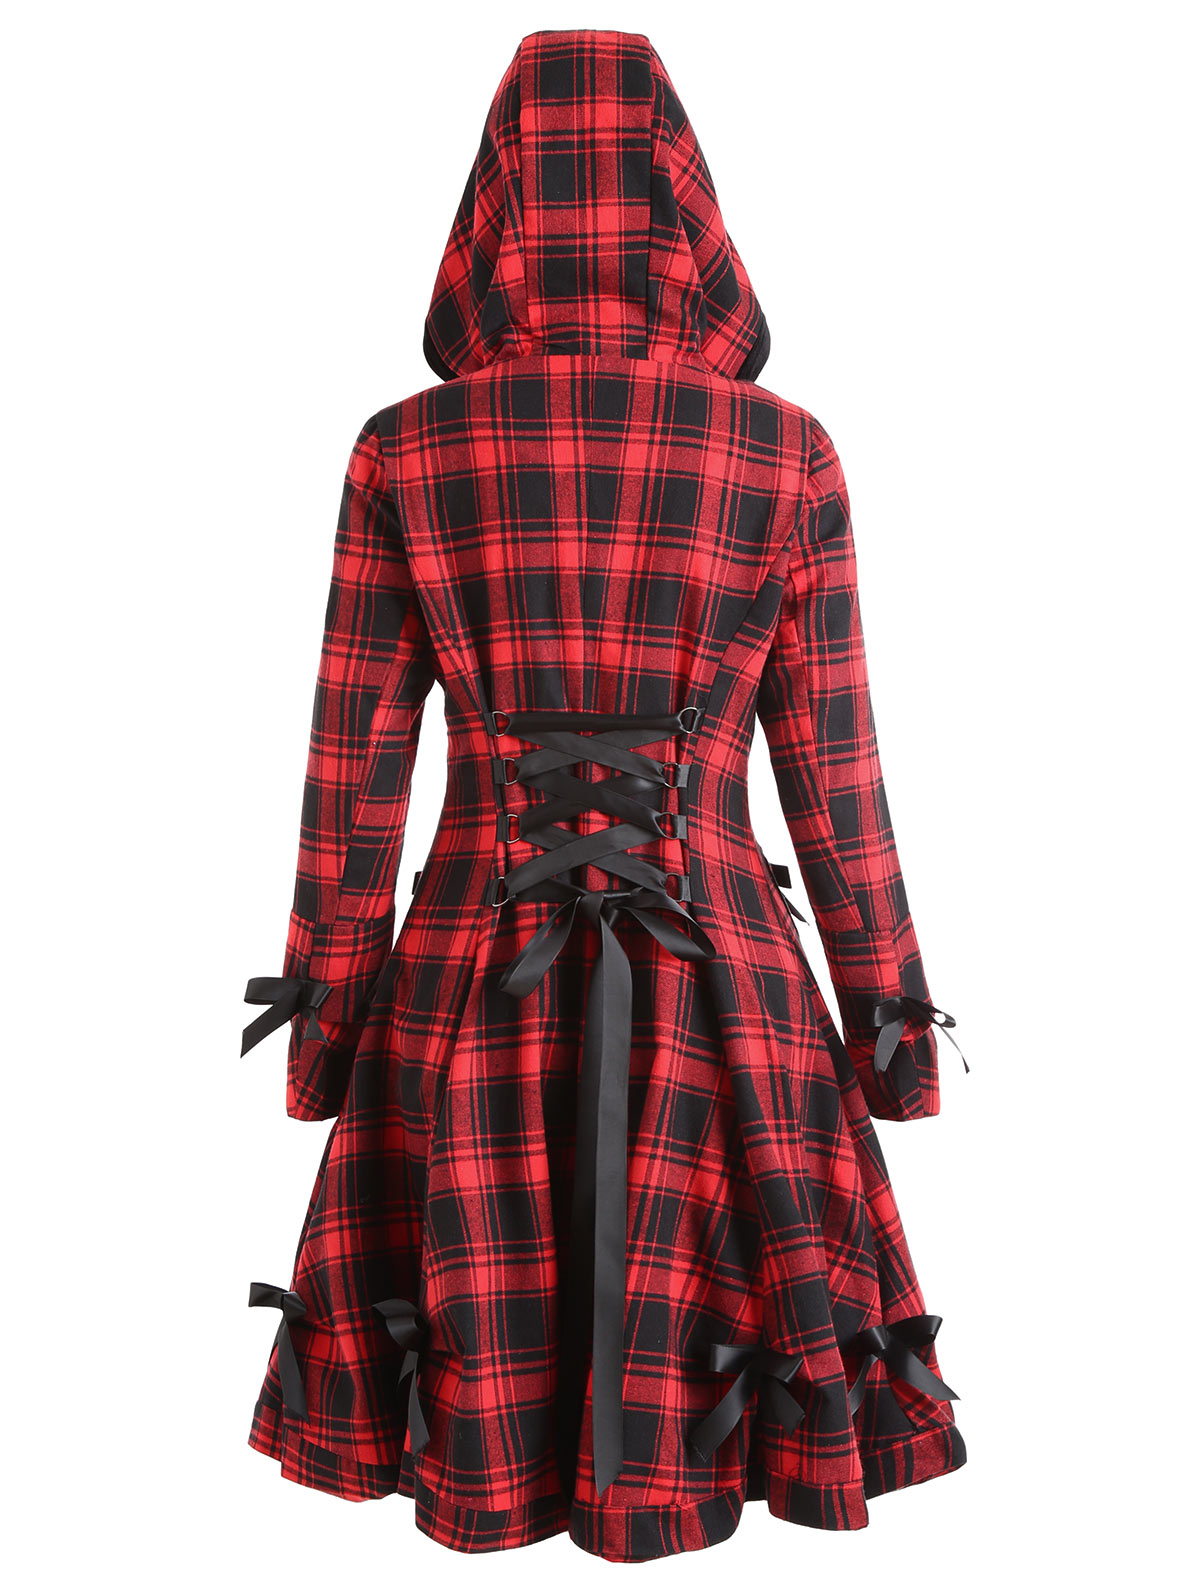 LANGSTAR 2017 Autumn Coat Women Plaid Hooded Button Up Skirted Coat Gothic Bow Lace-Up Long Pocket Women Outerwear Trench Coats